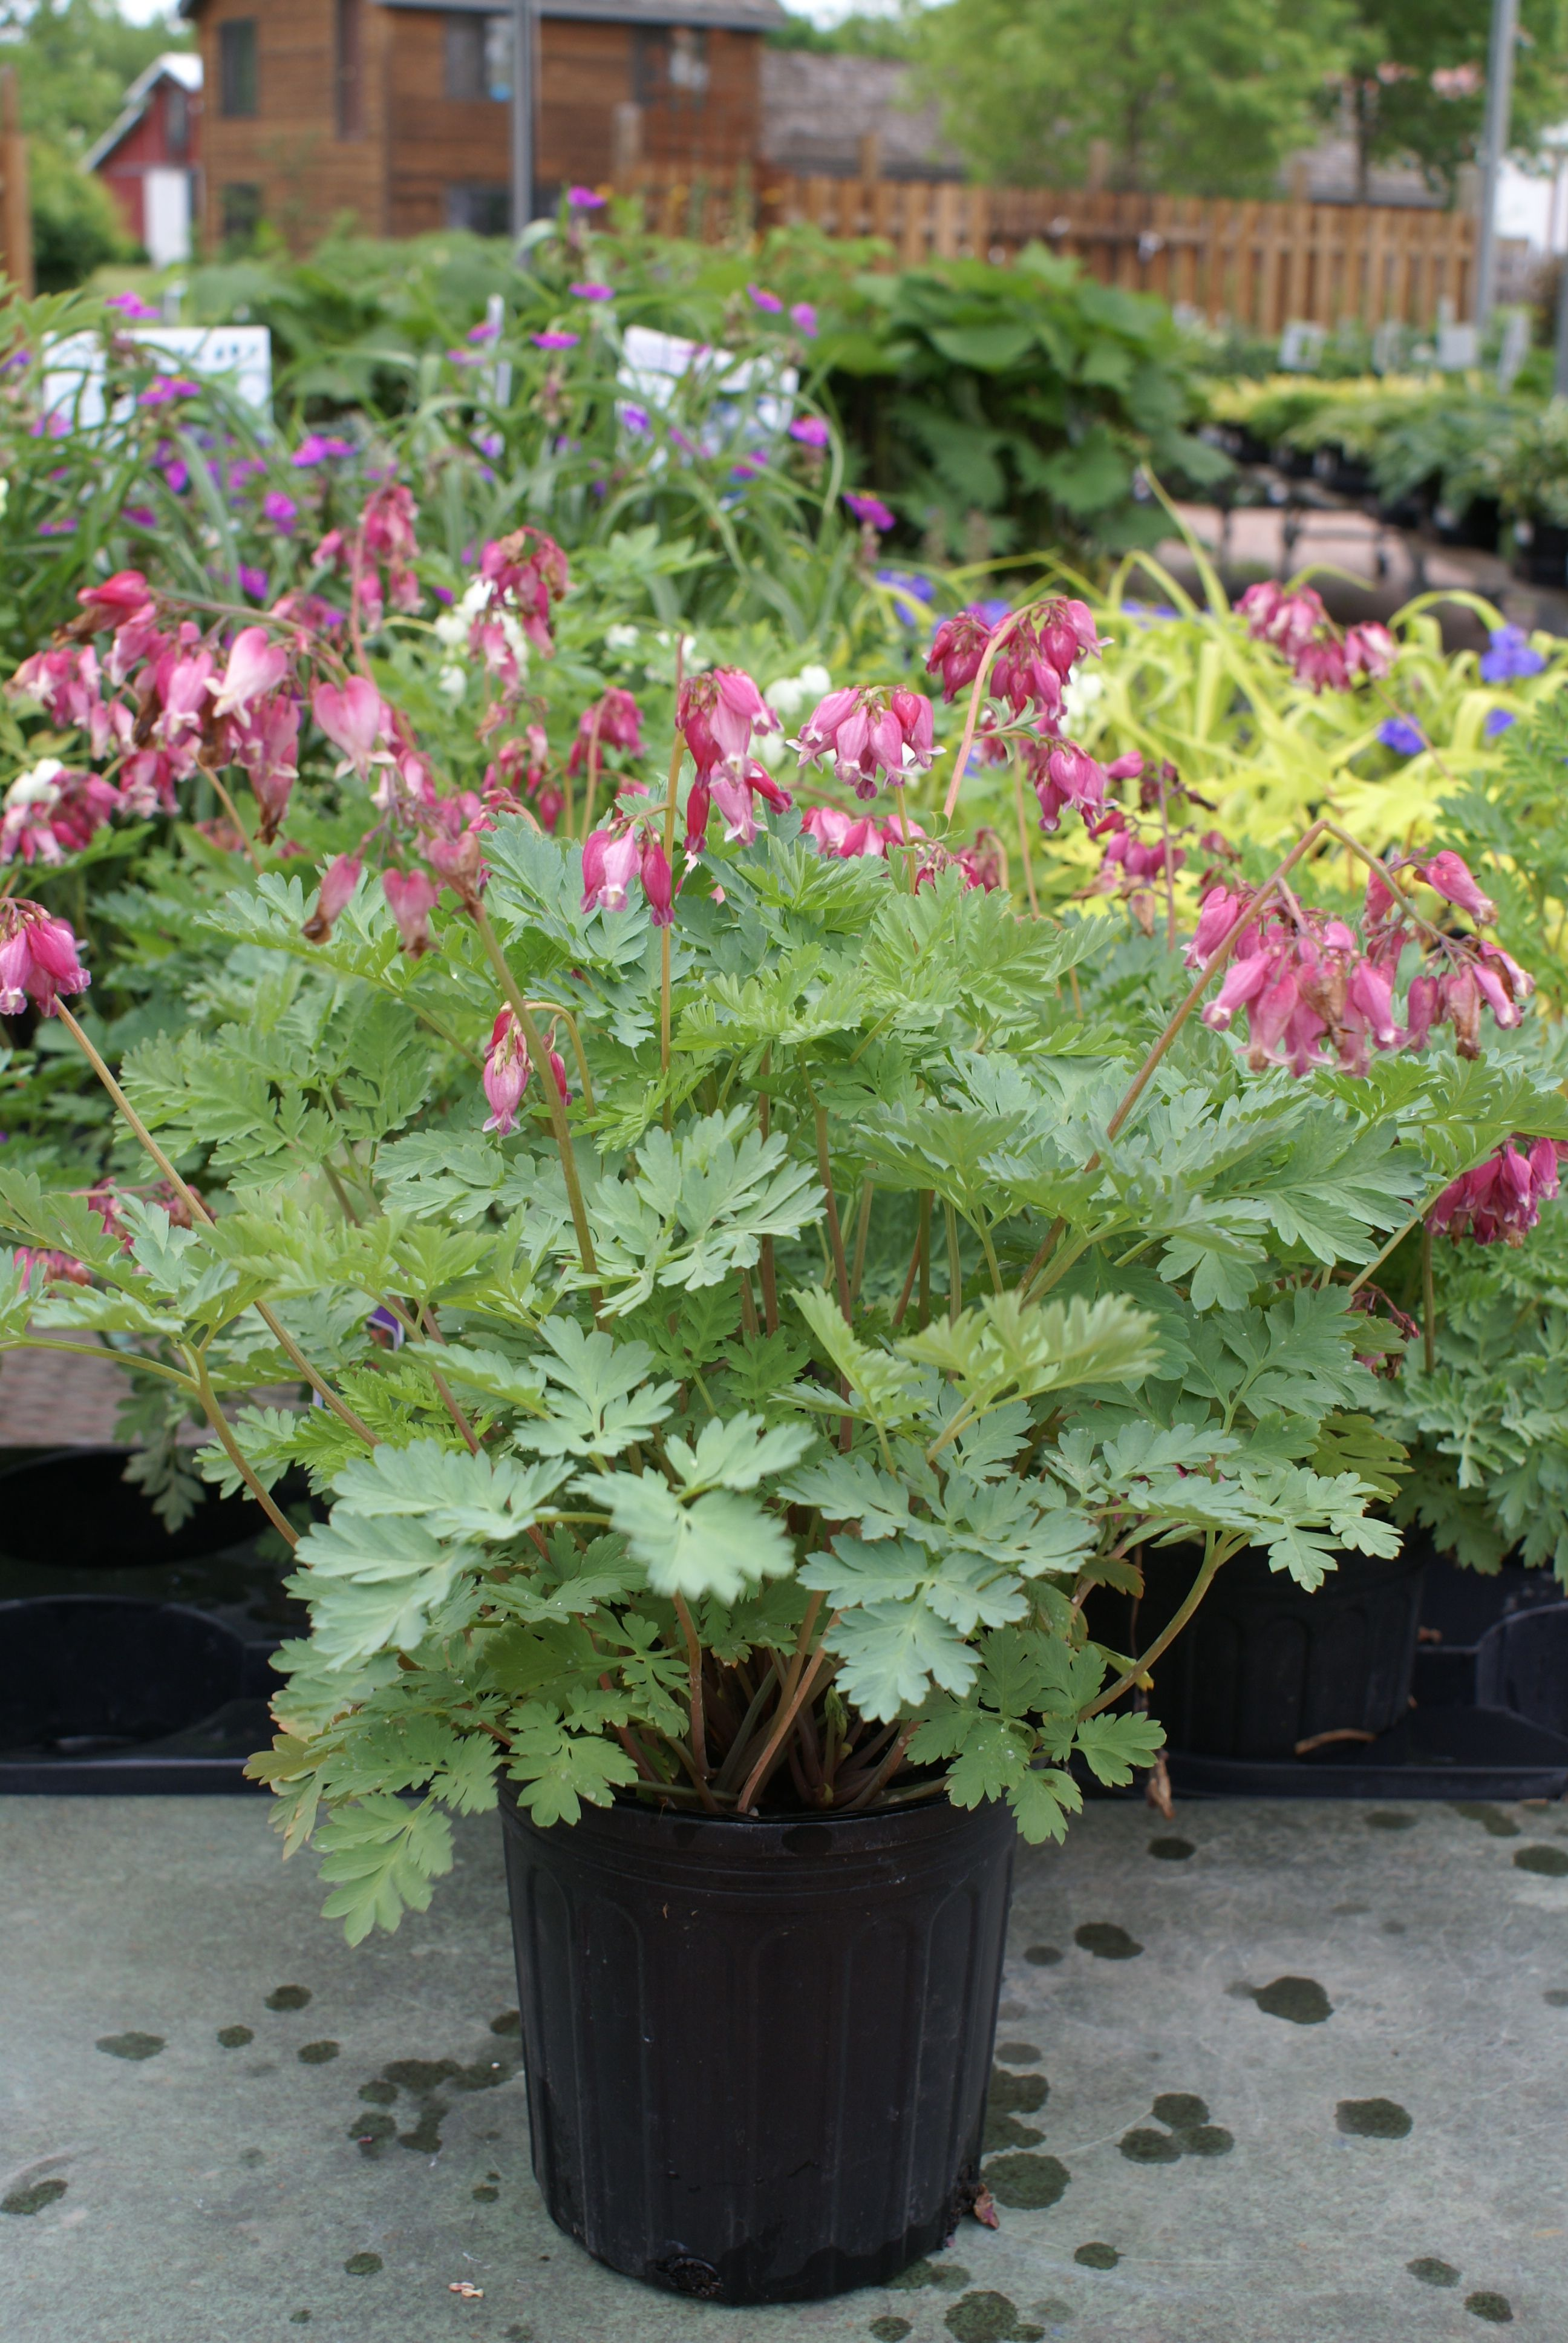 Bleeding Heart Luxuriant Is A Fast Growing Perennial With Pink